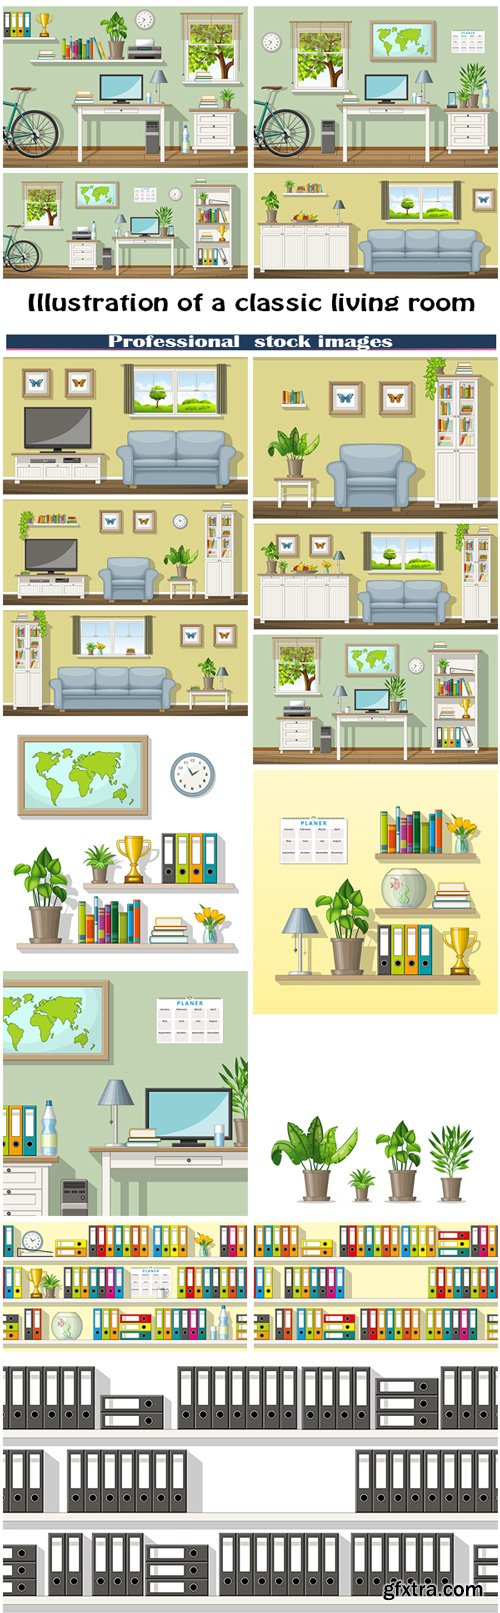 Illustration of a classic living room and folders on shelves